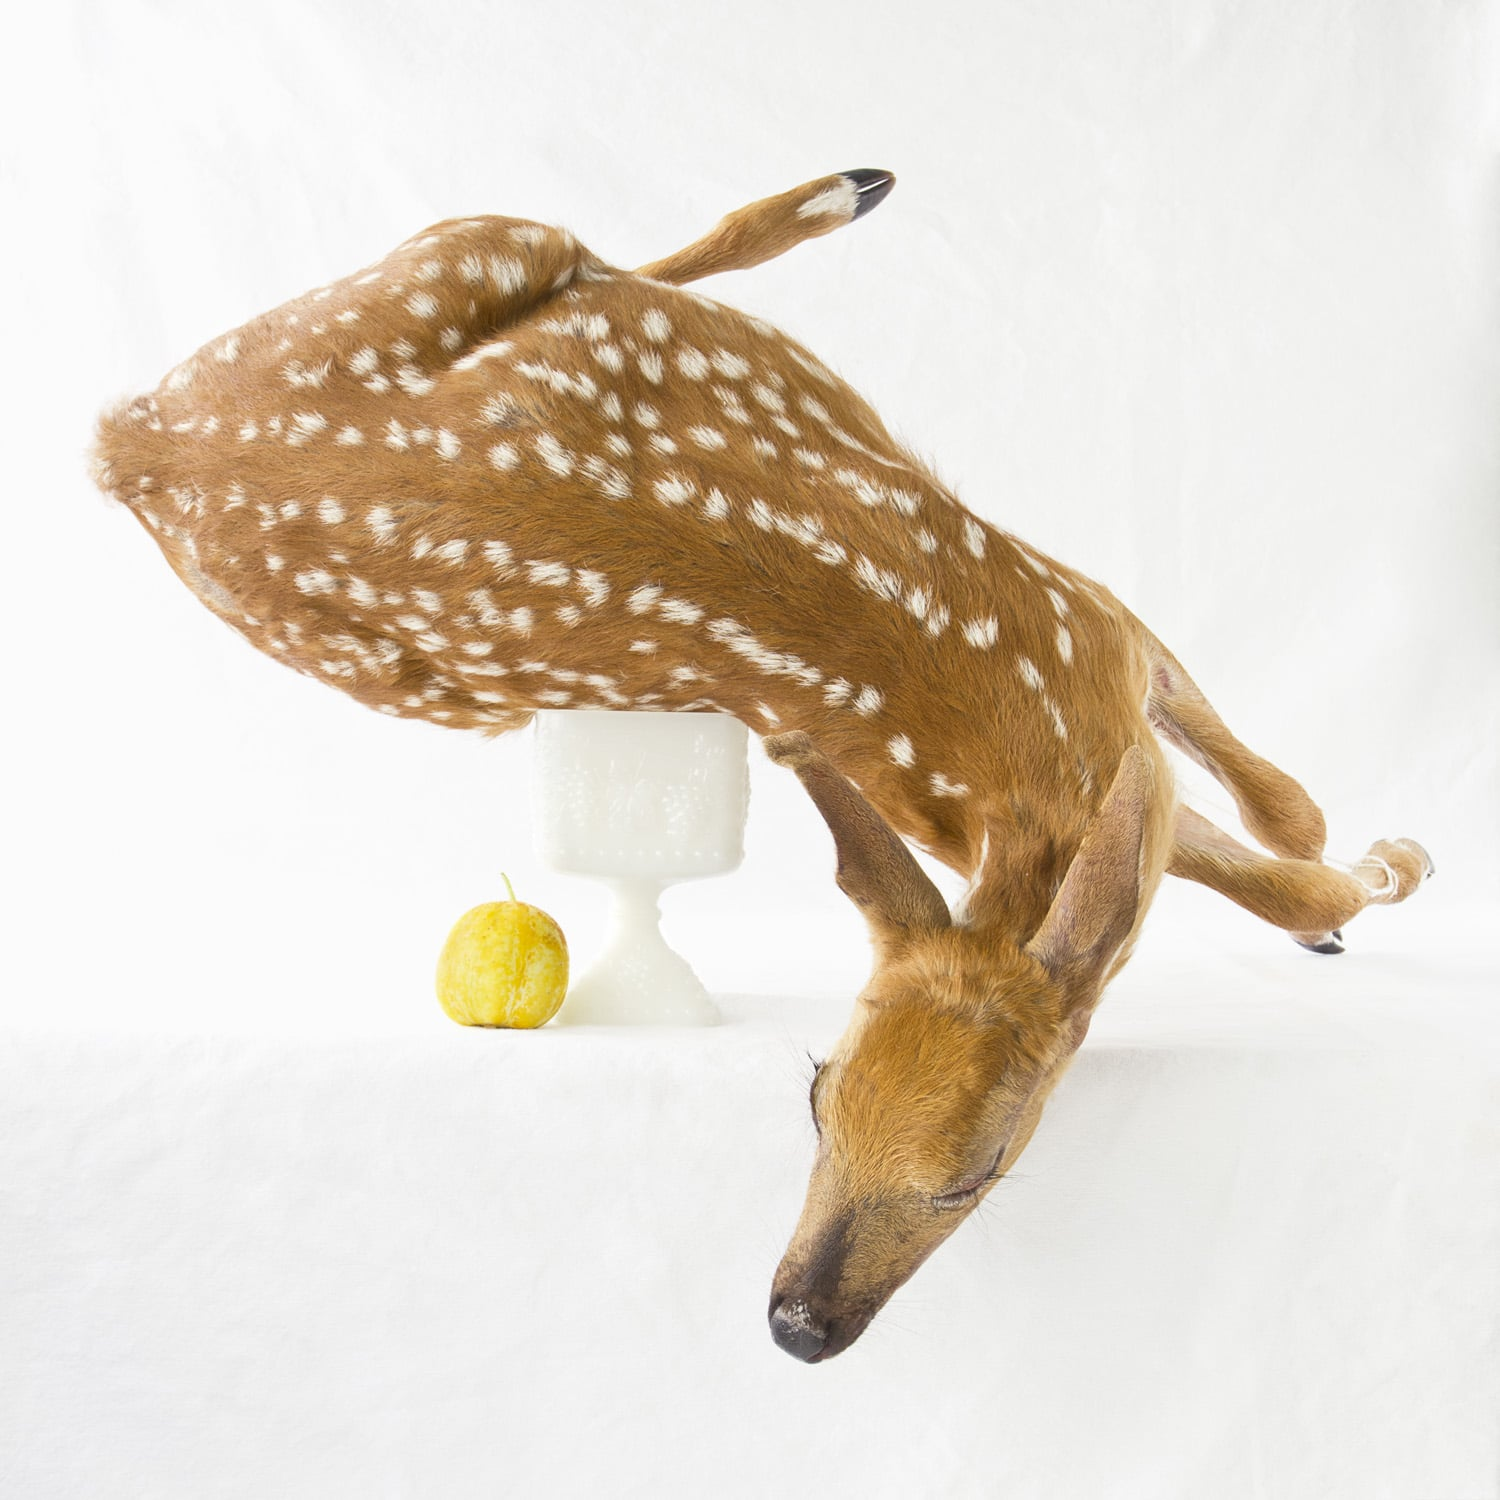 Still Life with Deer & Lemon Cucumber  2012 Archival Pigment Print on rag paper 28 x 28 inch image on 36 x 36 inch paper edition of 5